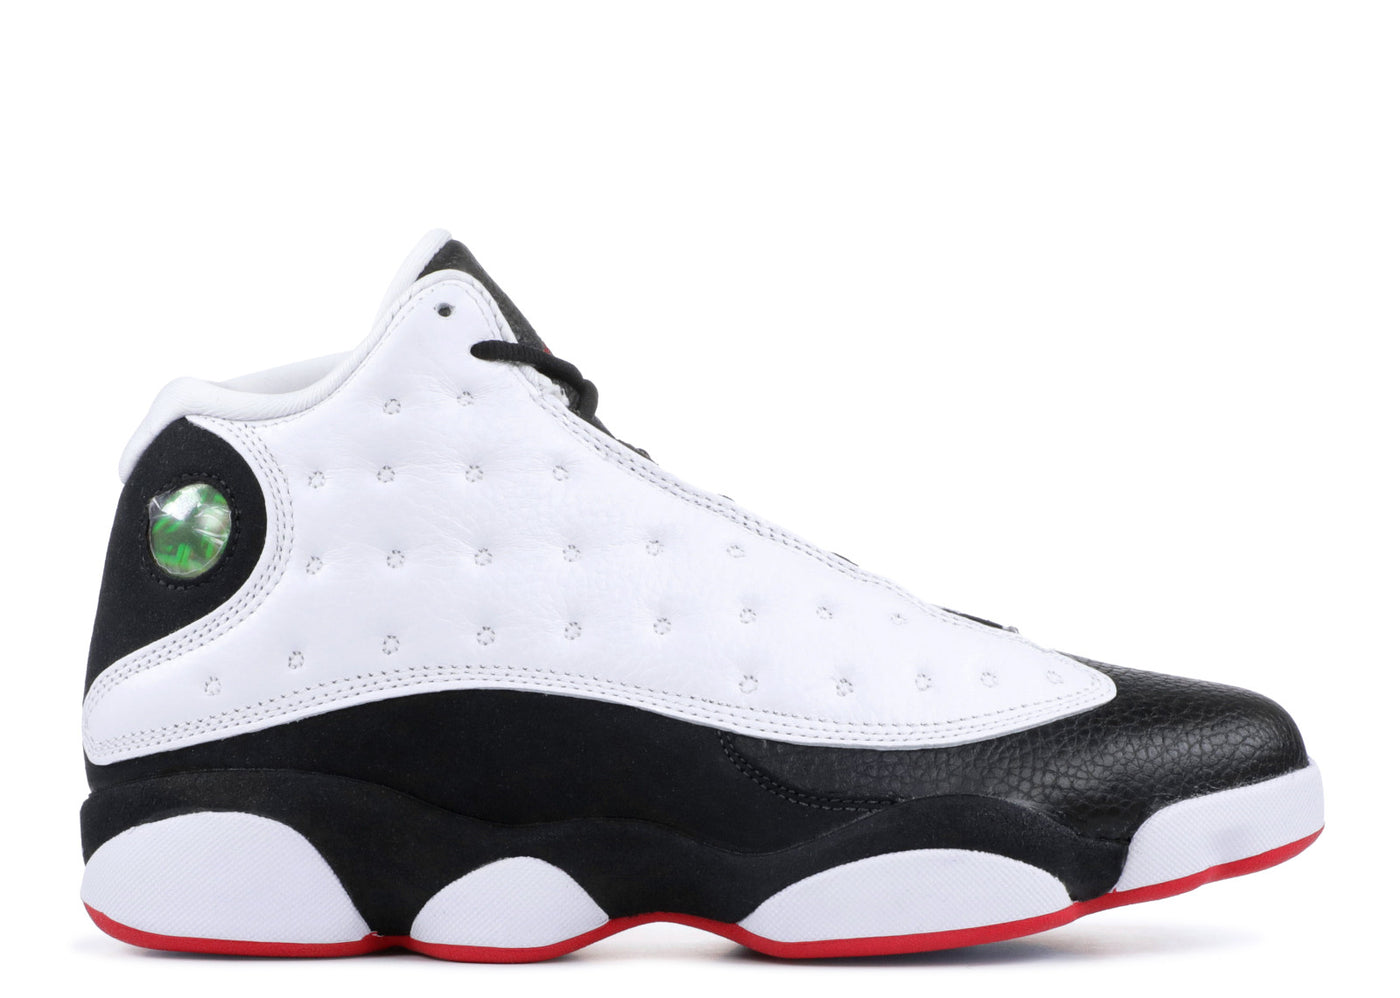 detailed look 88a3a cd71d Air Jordan 13 Retro